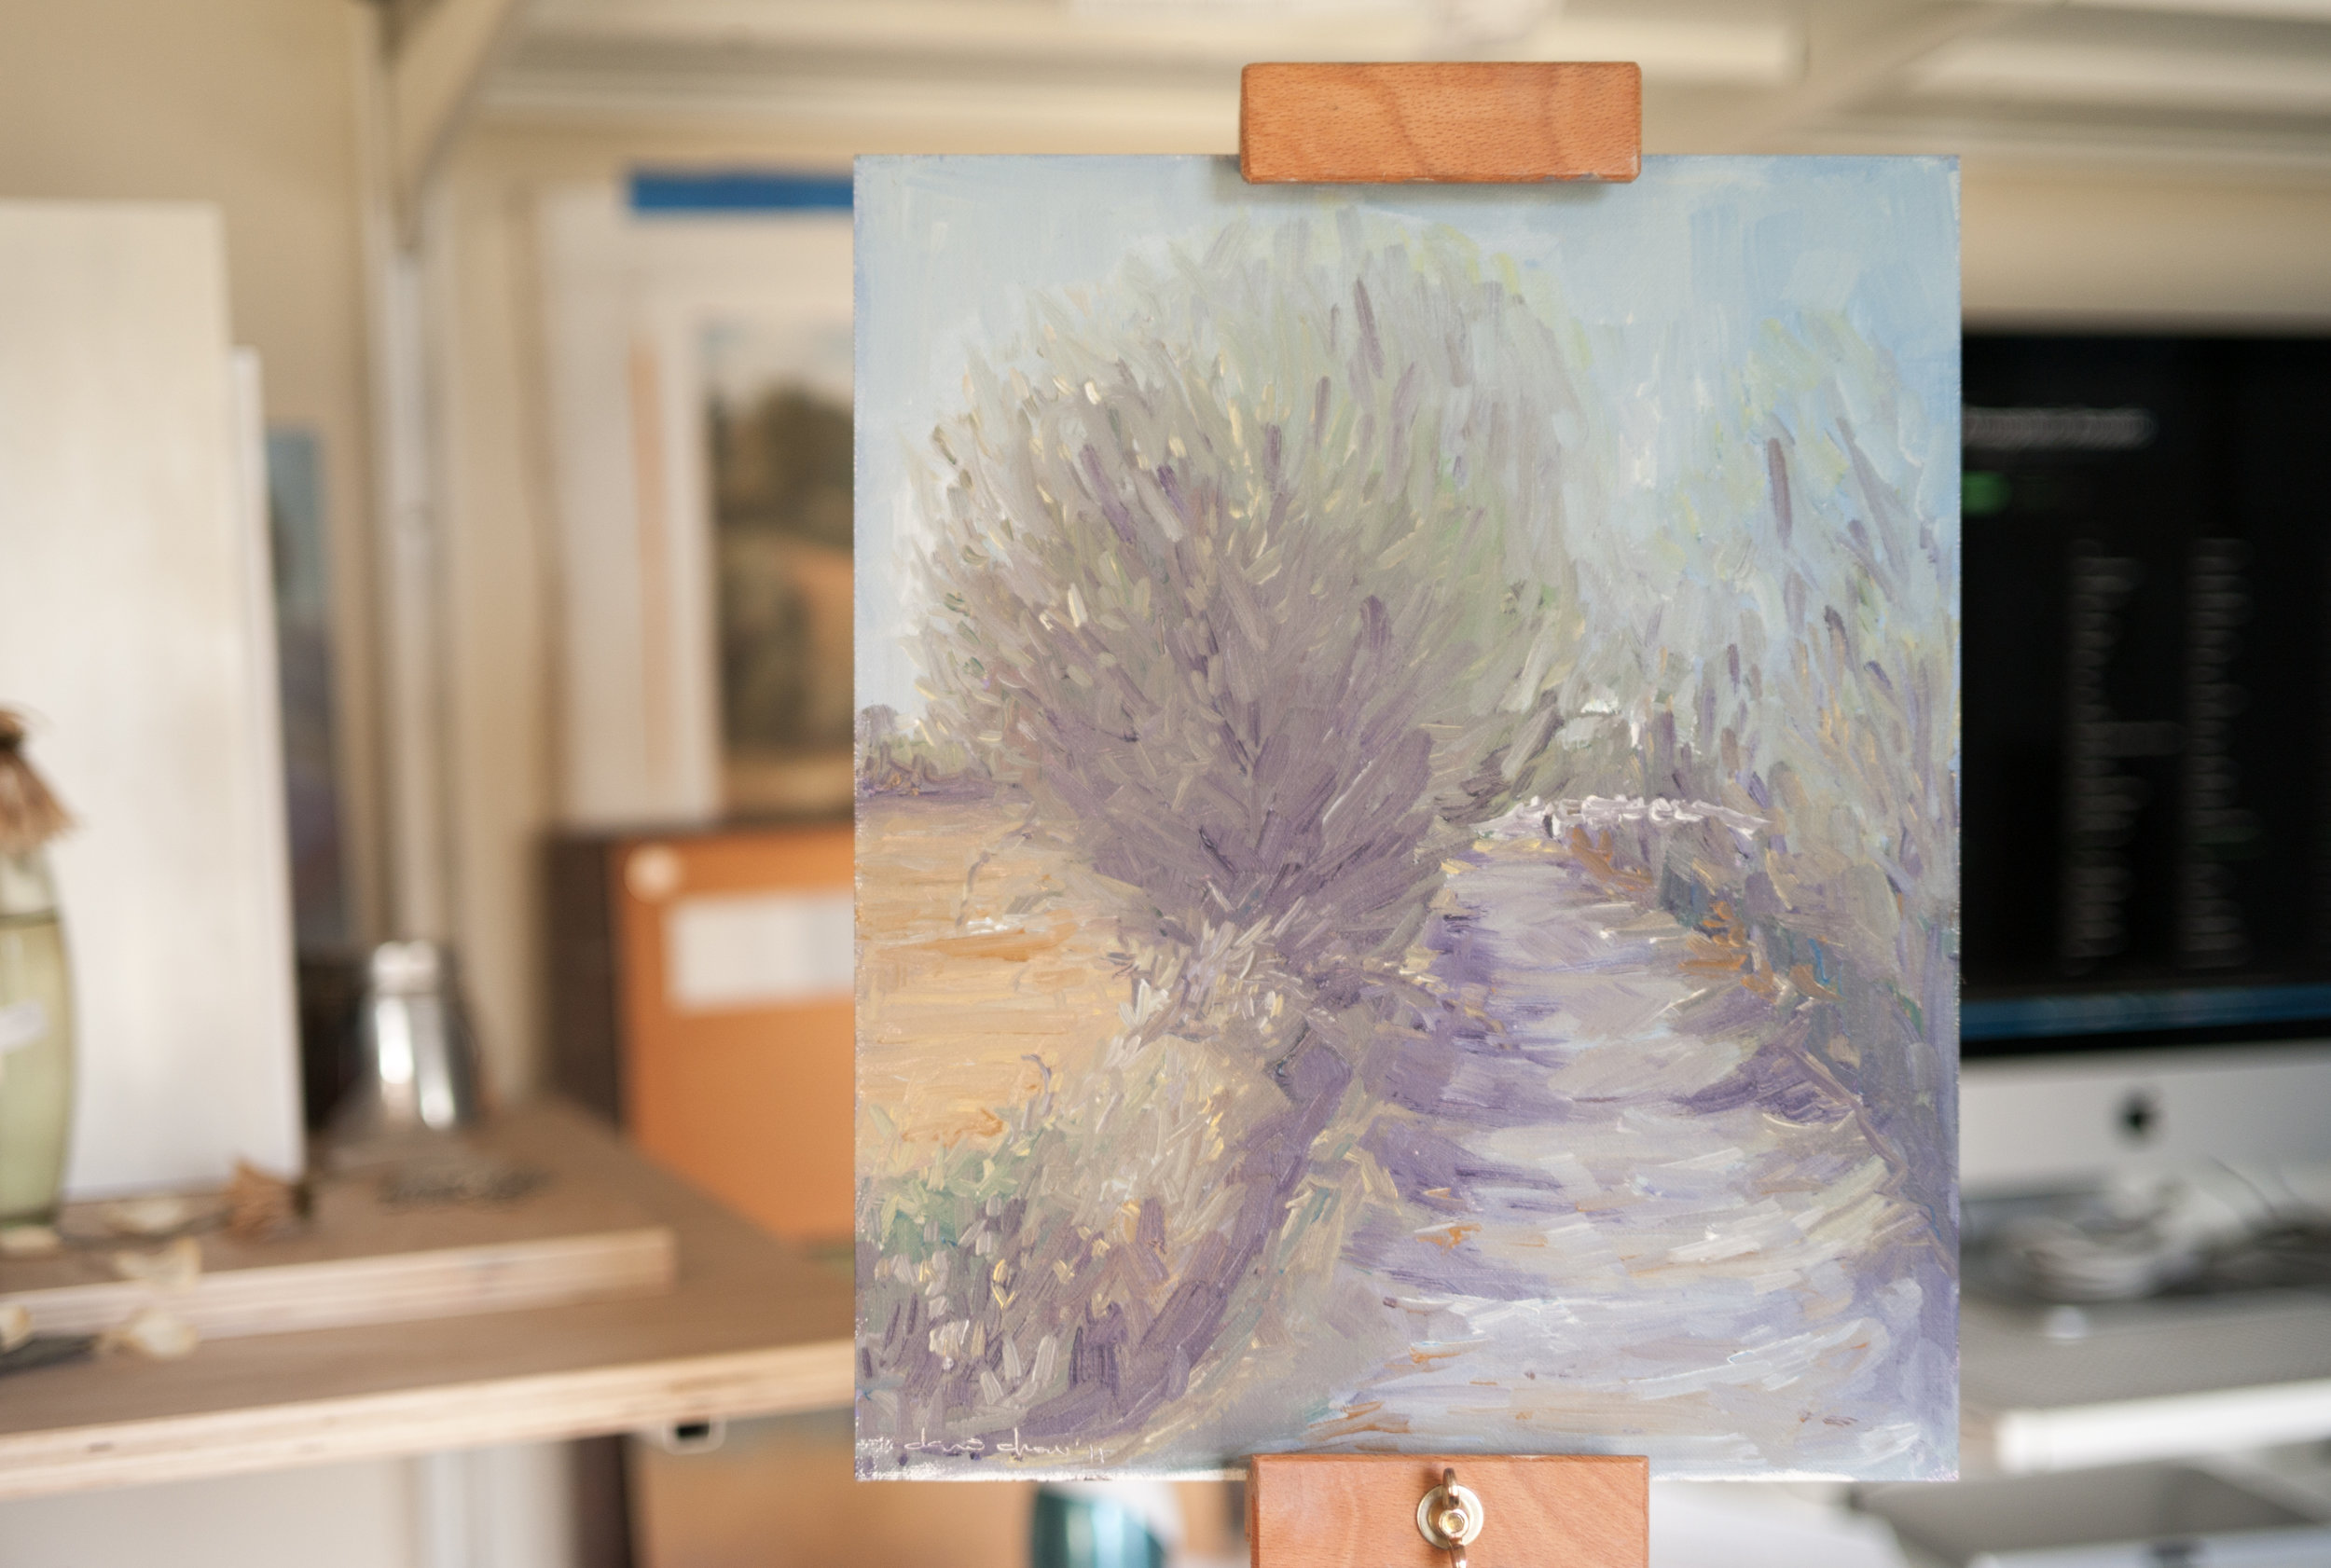 Painted over: Plein air painting from Coriano, Italy. 2011.